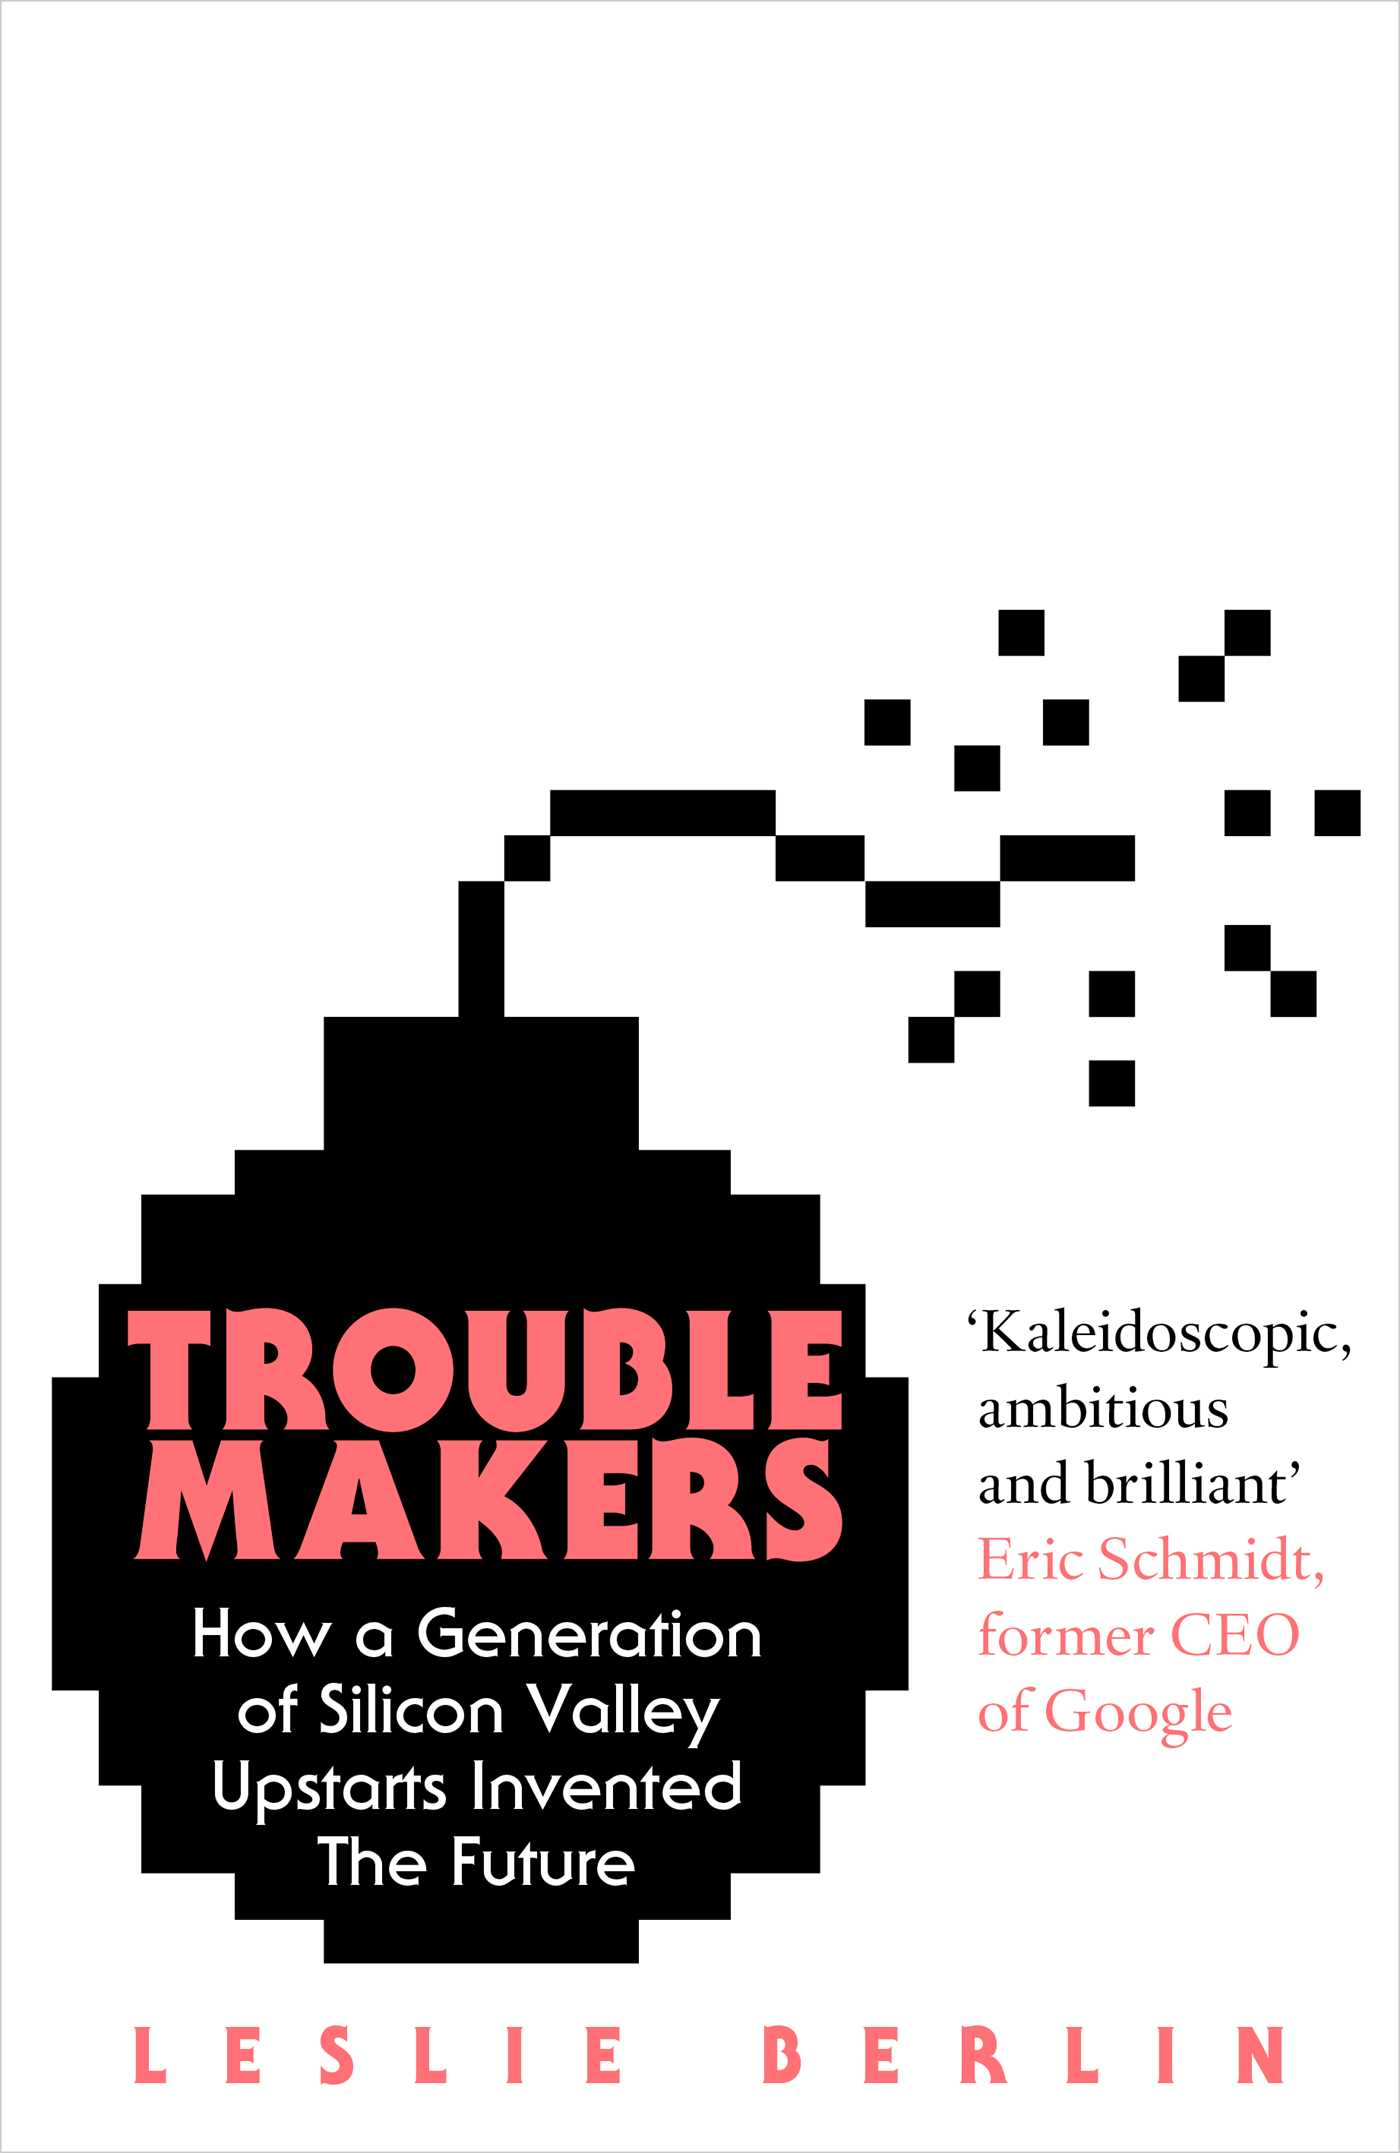 Troublemakers 9781849838702 hr